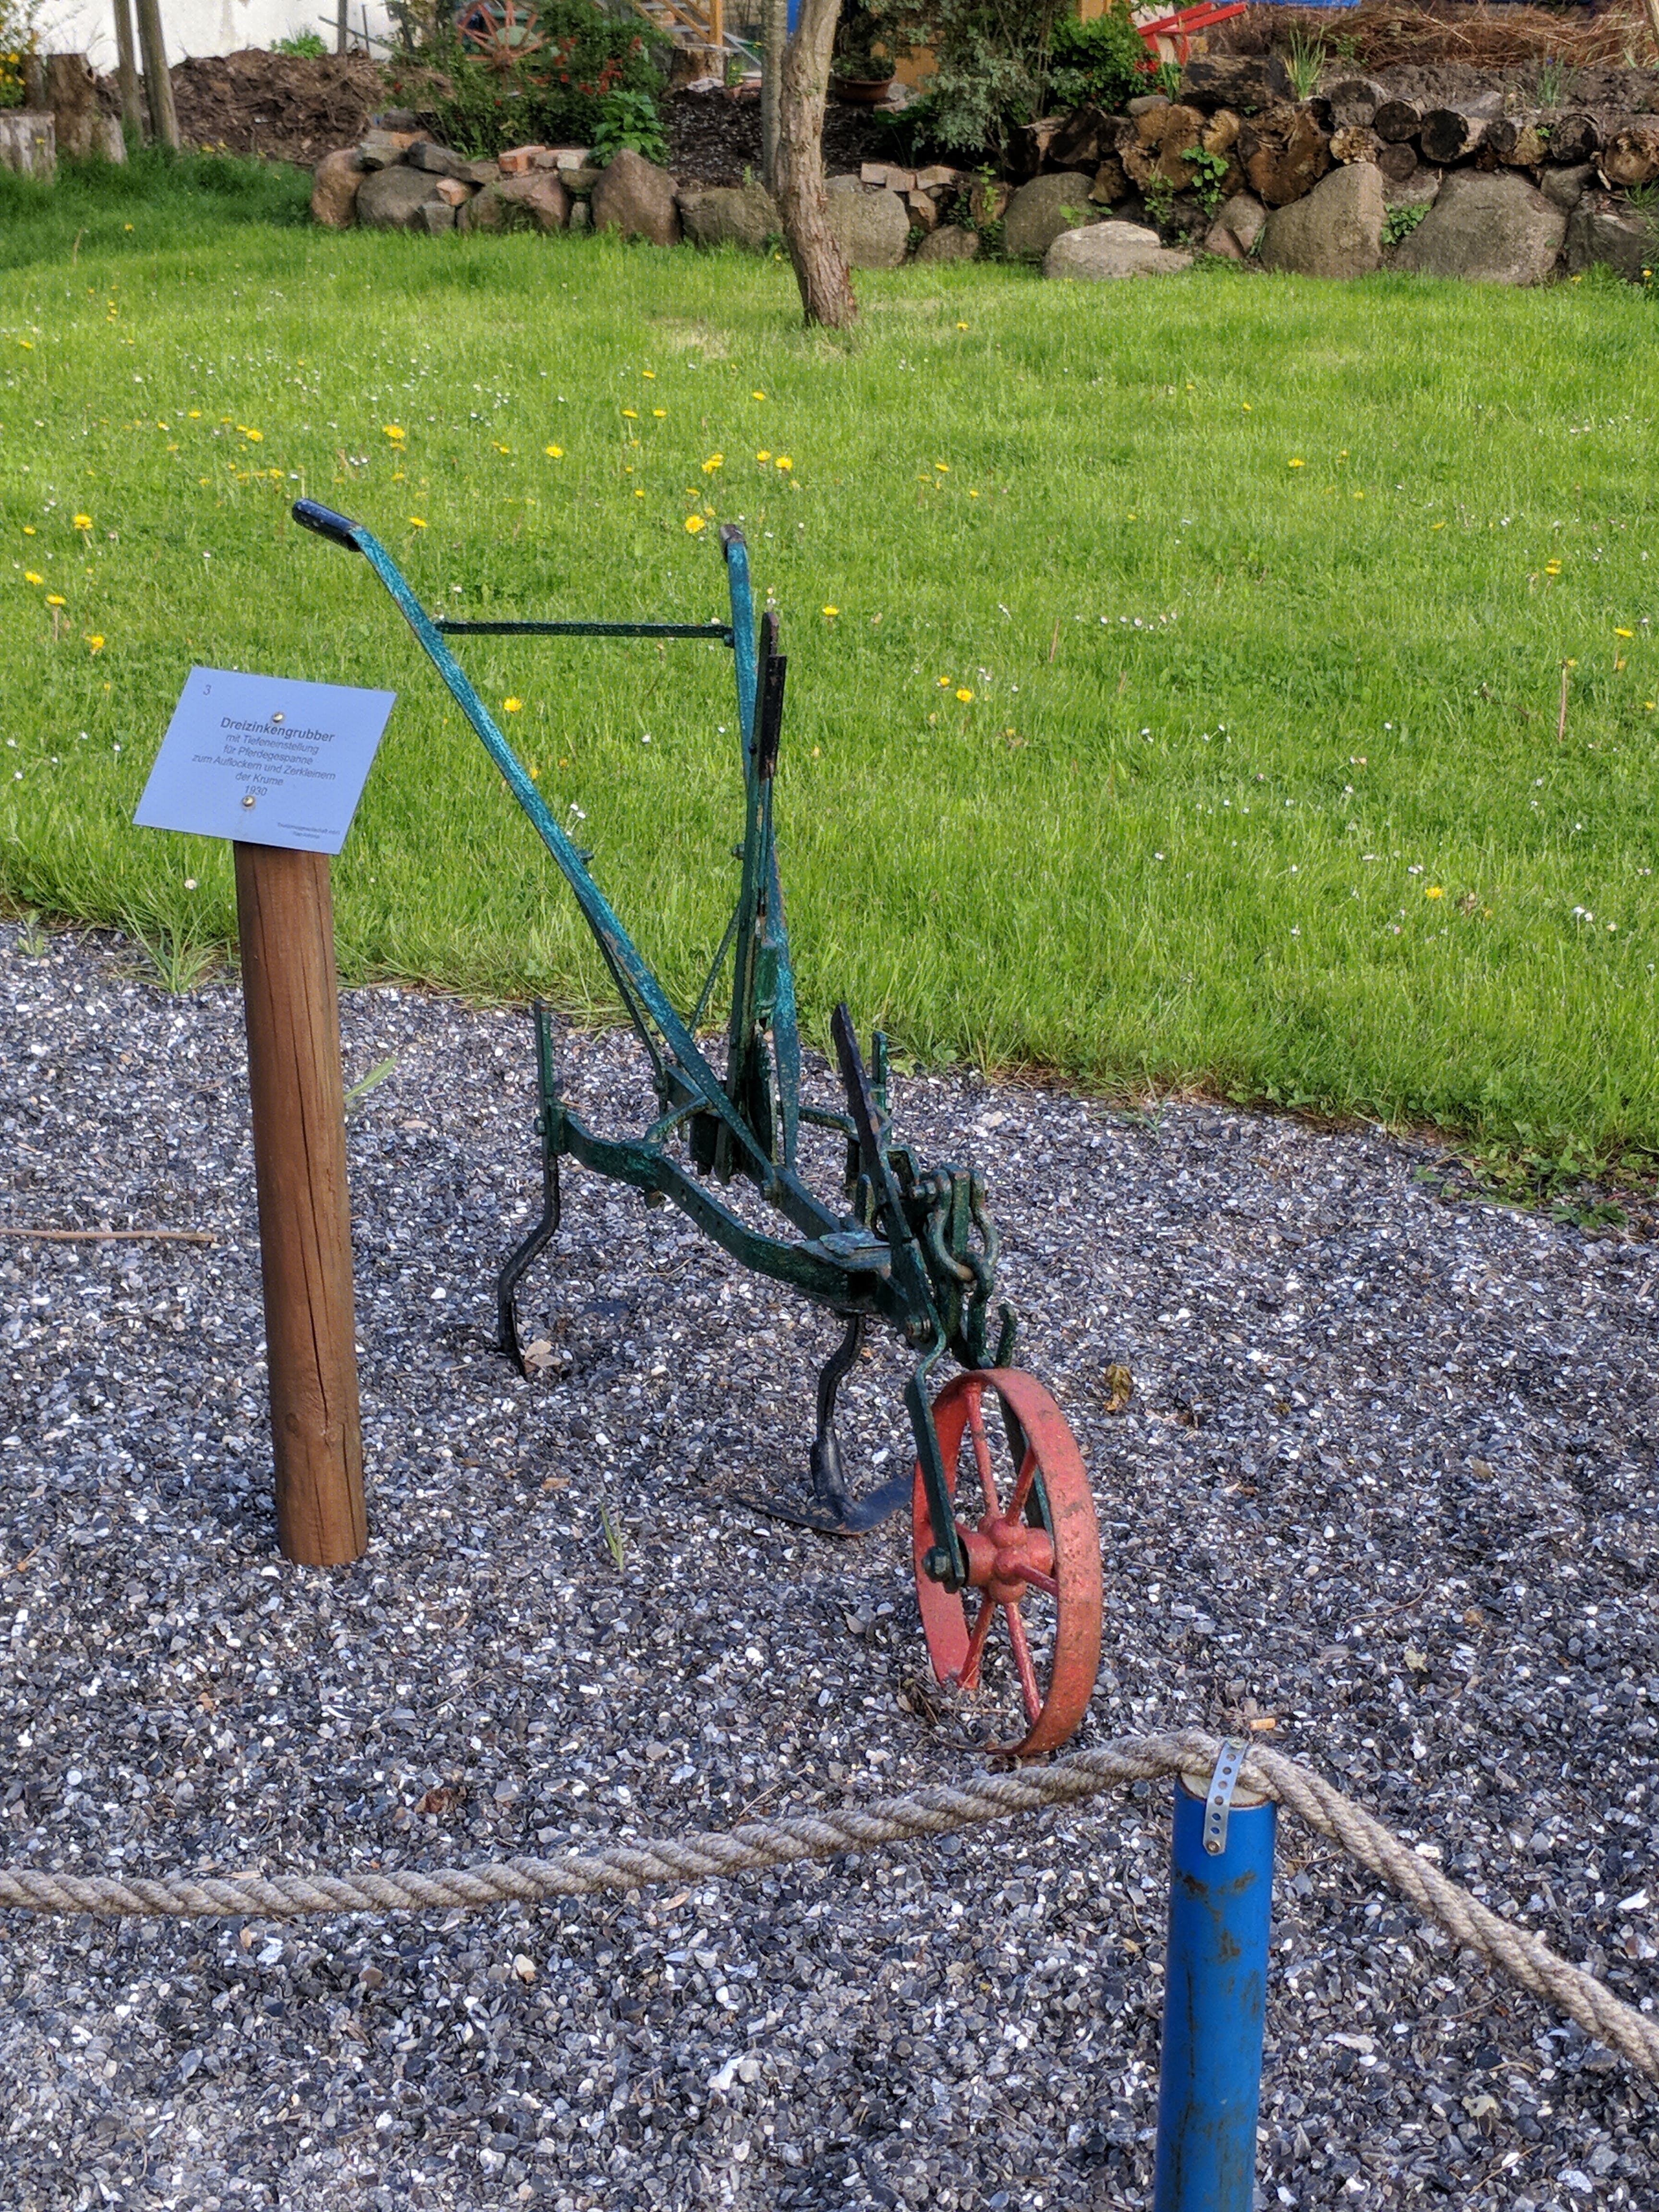 Green and Red Wheelbarrow Frame Near Green Grass